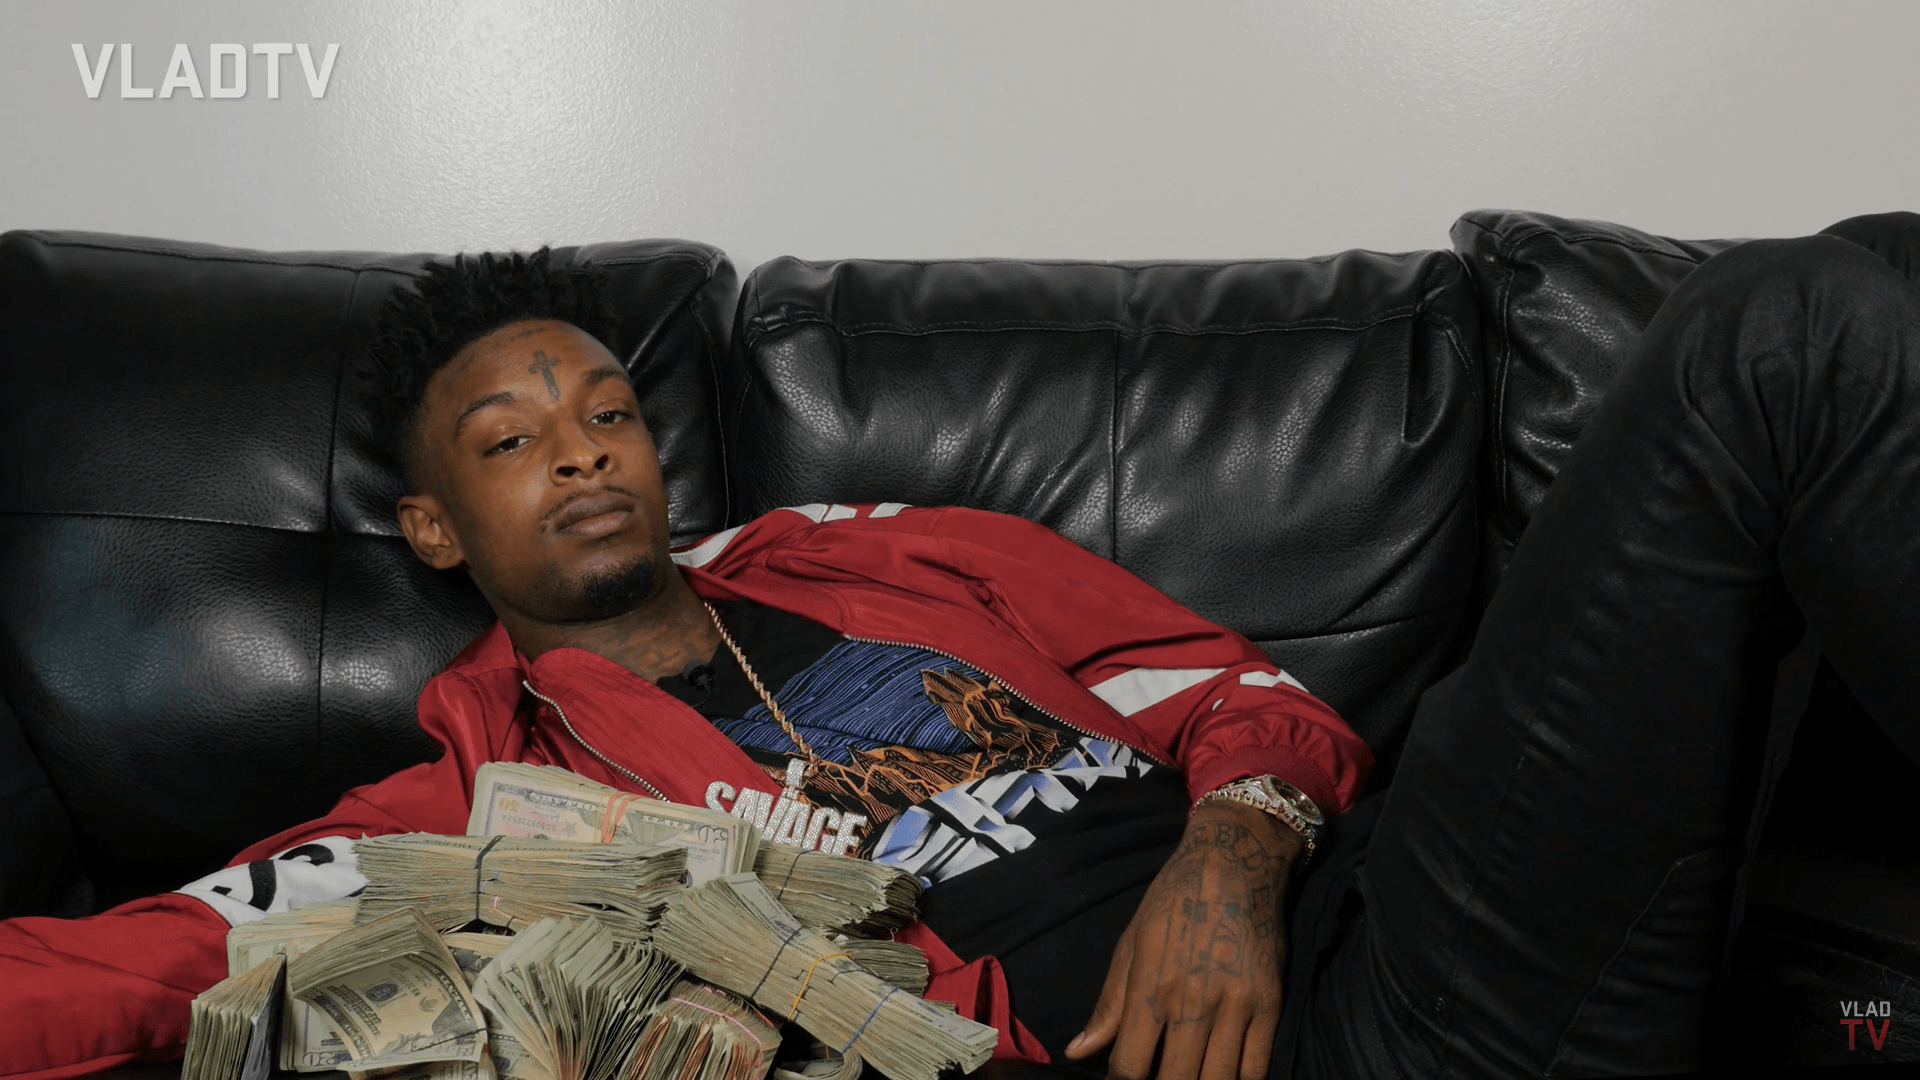 21 Savage Wallpaper Related Keywords & Suggestions - 21 Savage ...